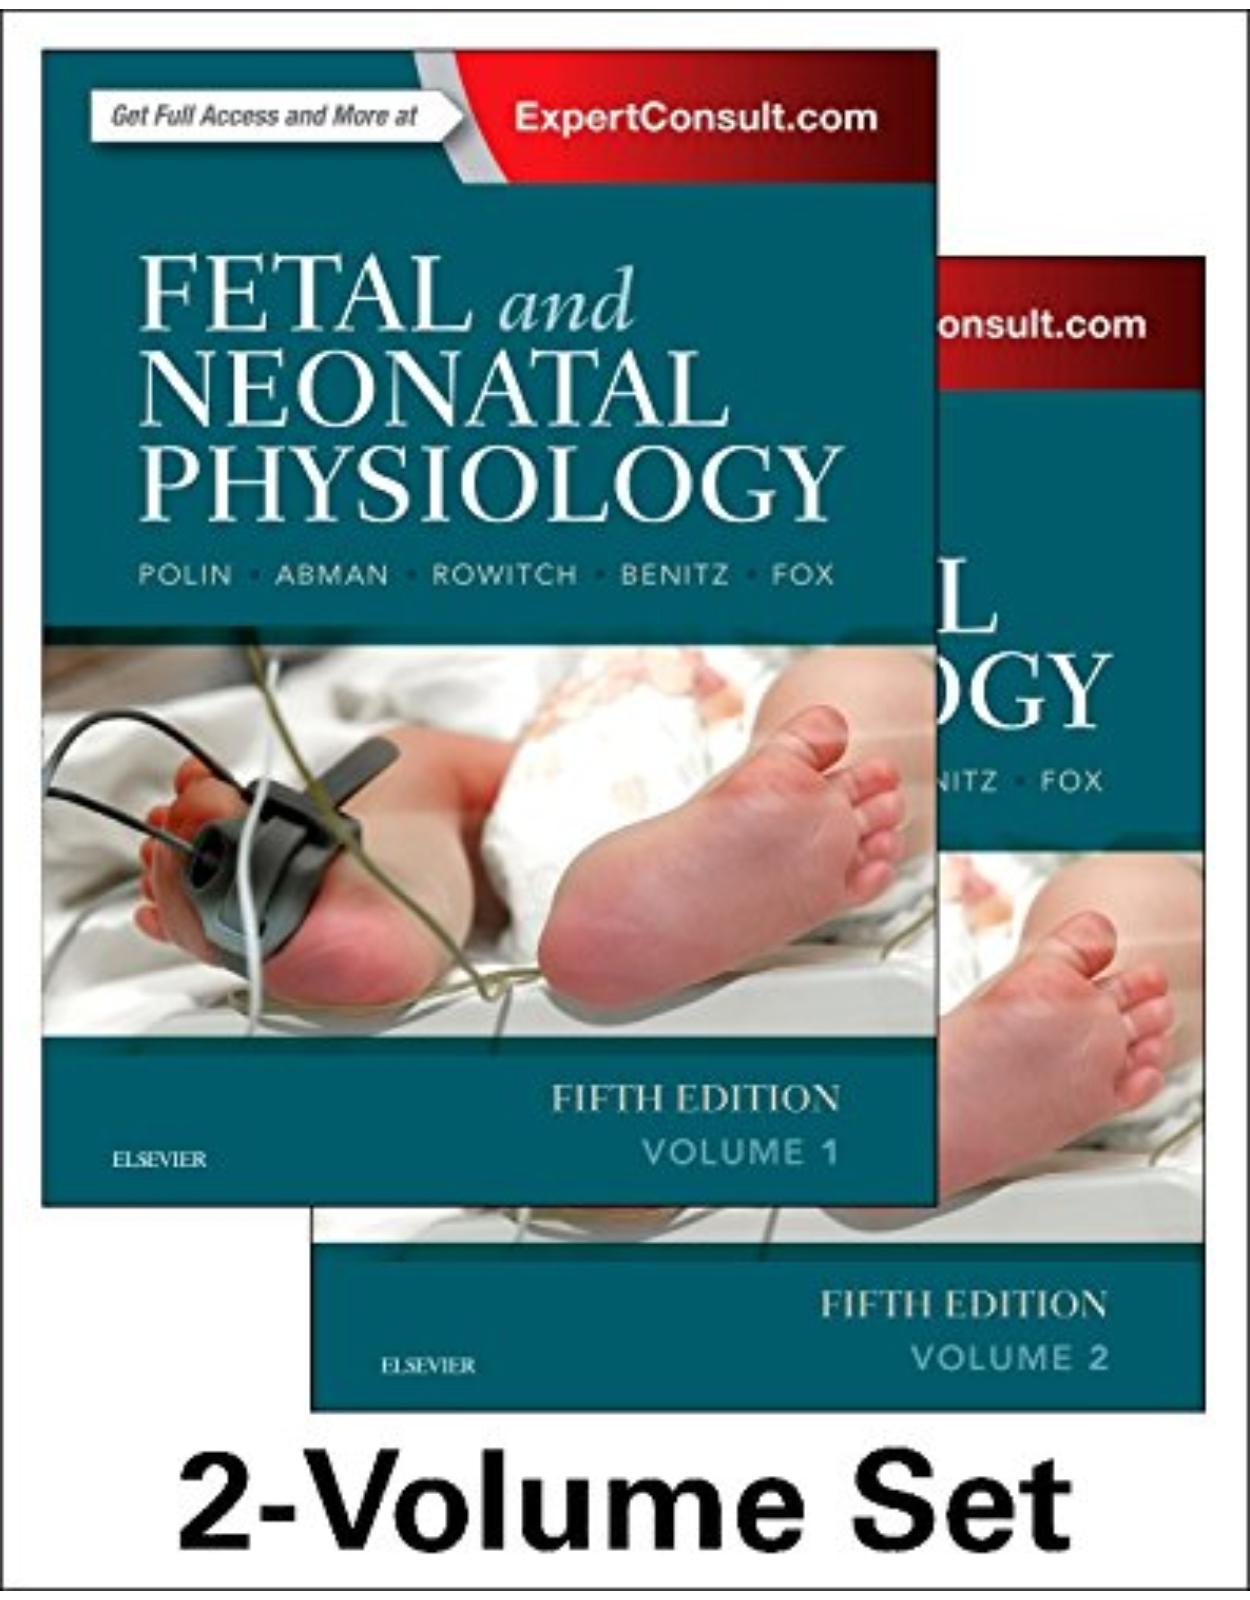 Fetal and Neonatal Physiology, 2-Volume Set, 5th Edition